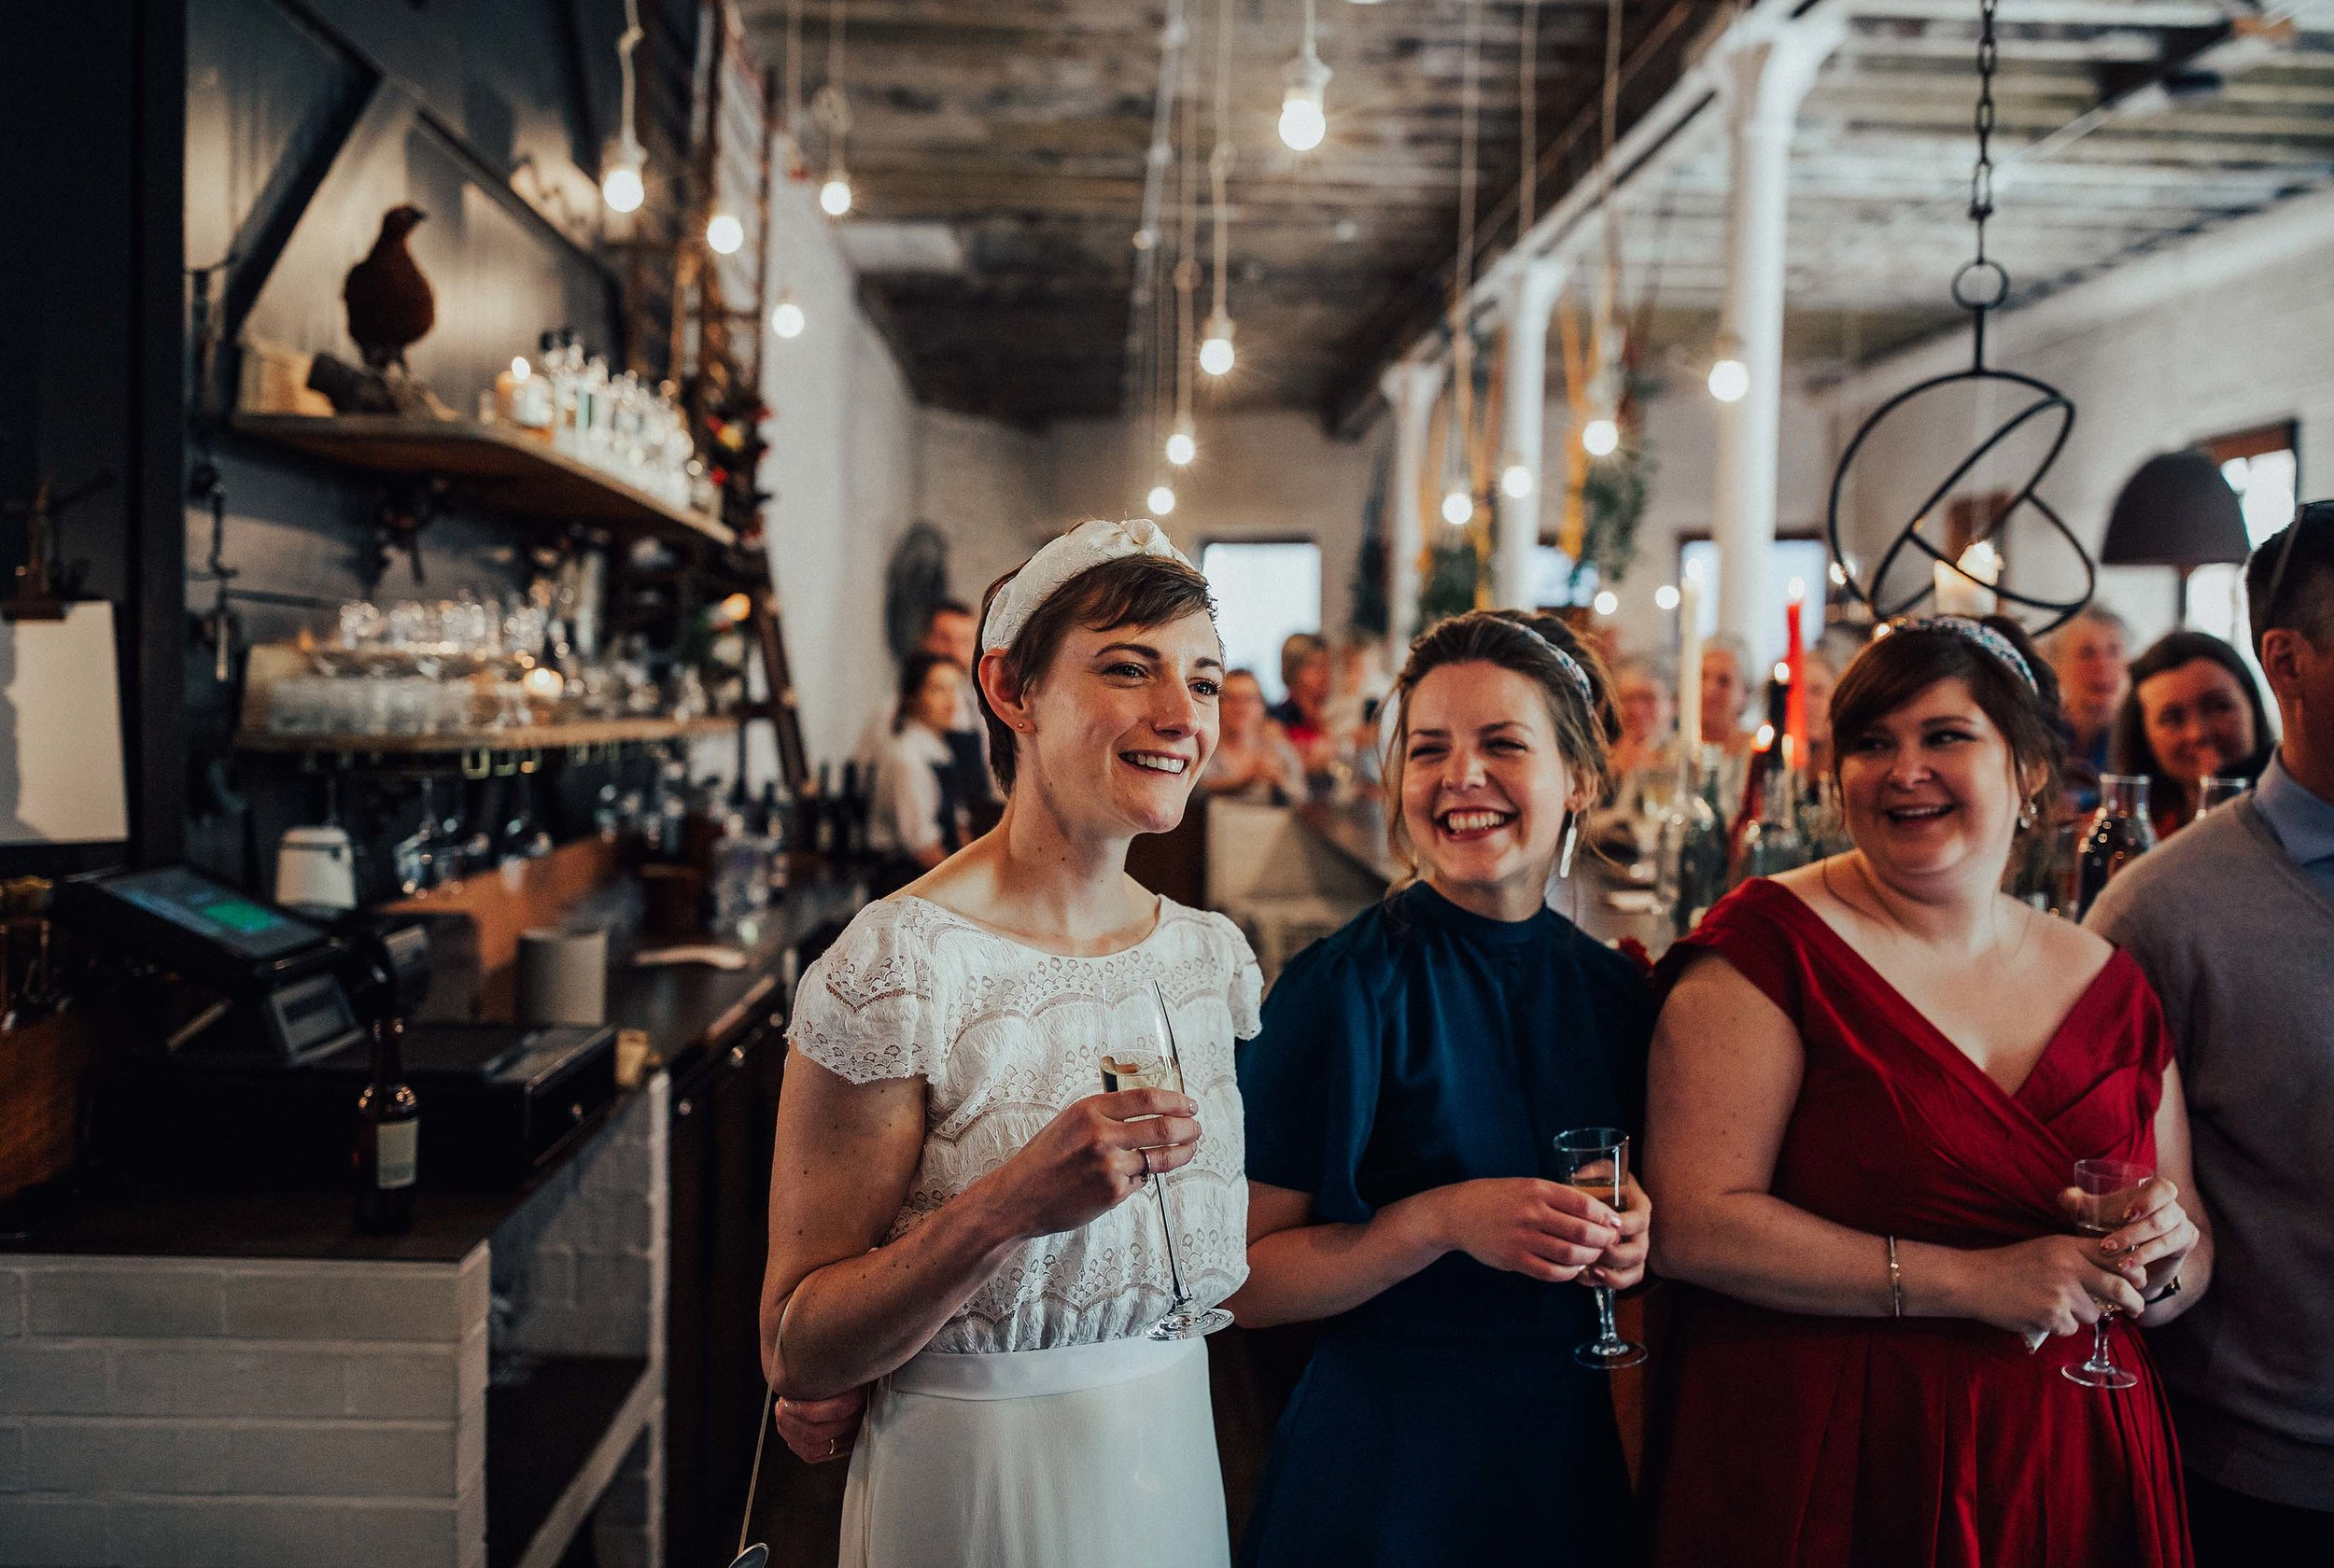 TIMBERYARD_EDINBURGH_WEDDING_PJ_PHILLIPS_PHOTOGRAPHY_153.jpg